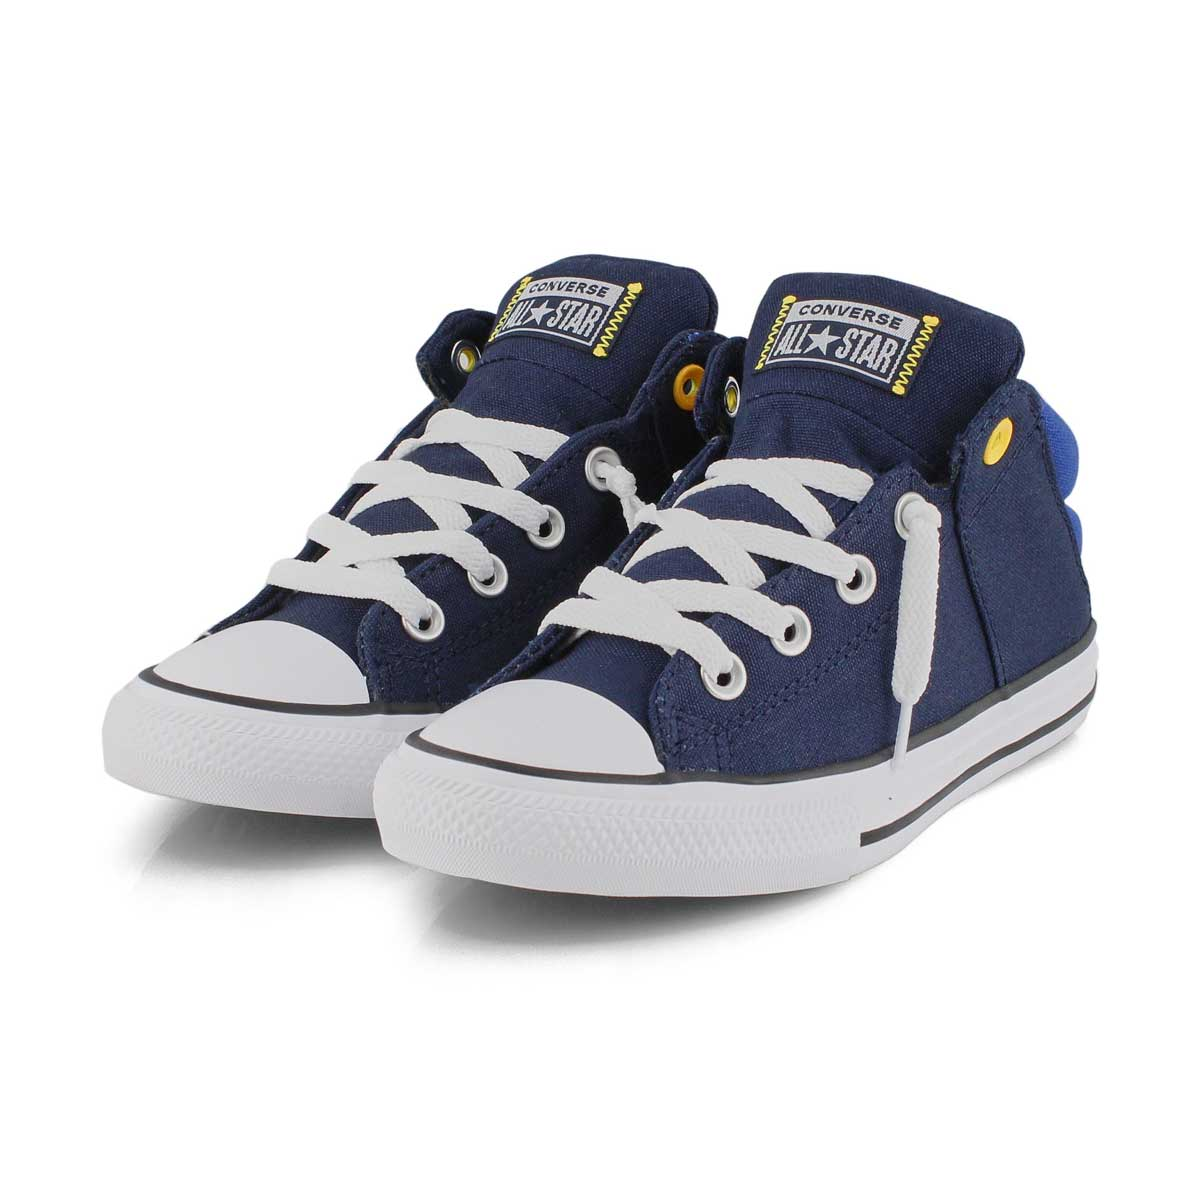 Bys CTAS Axel Mid obsidian/orng sneaker